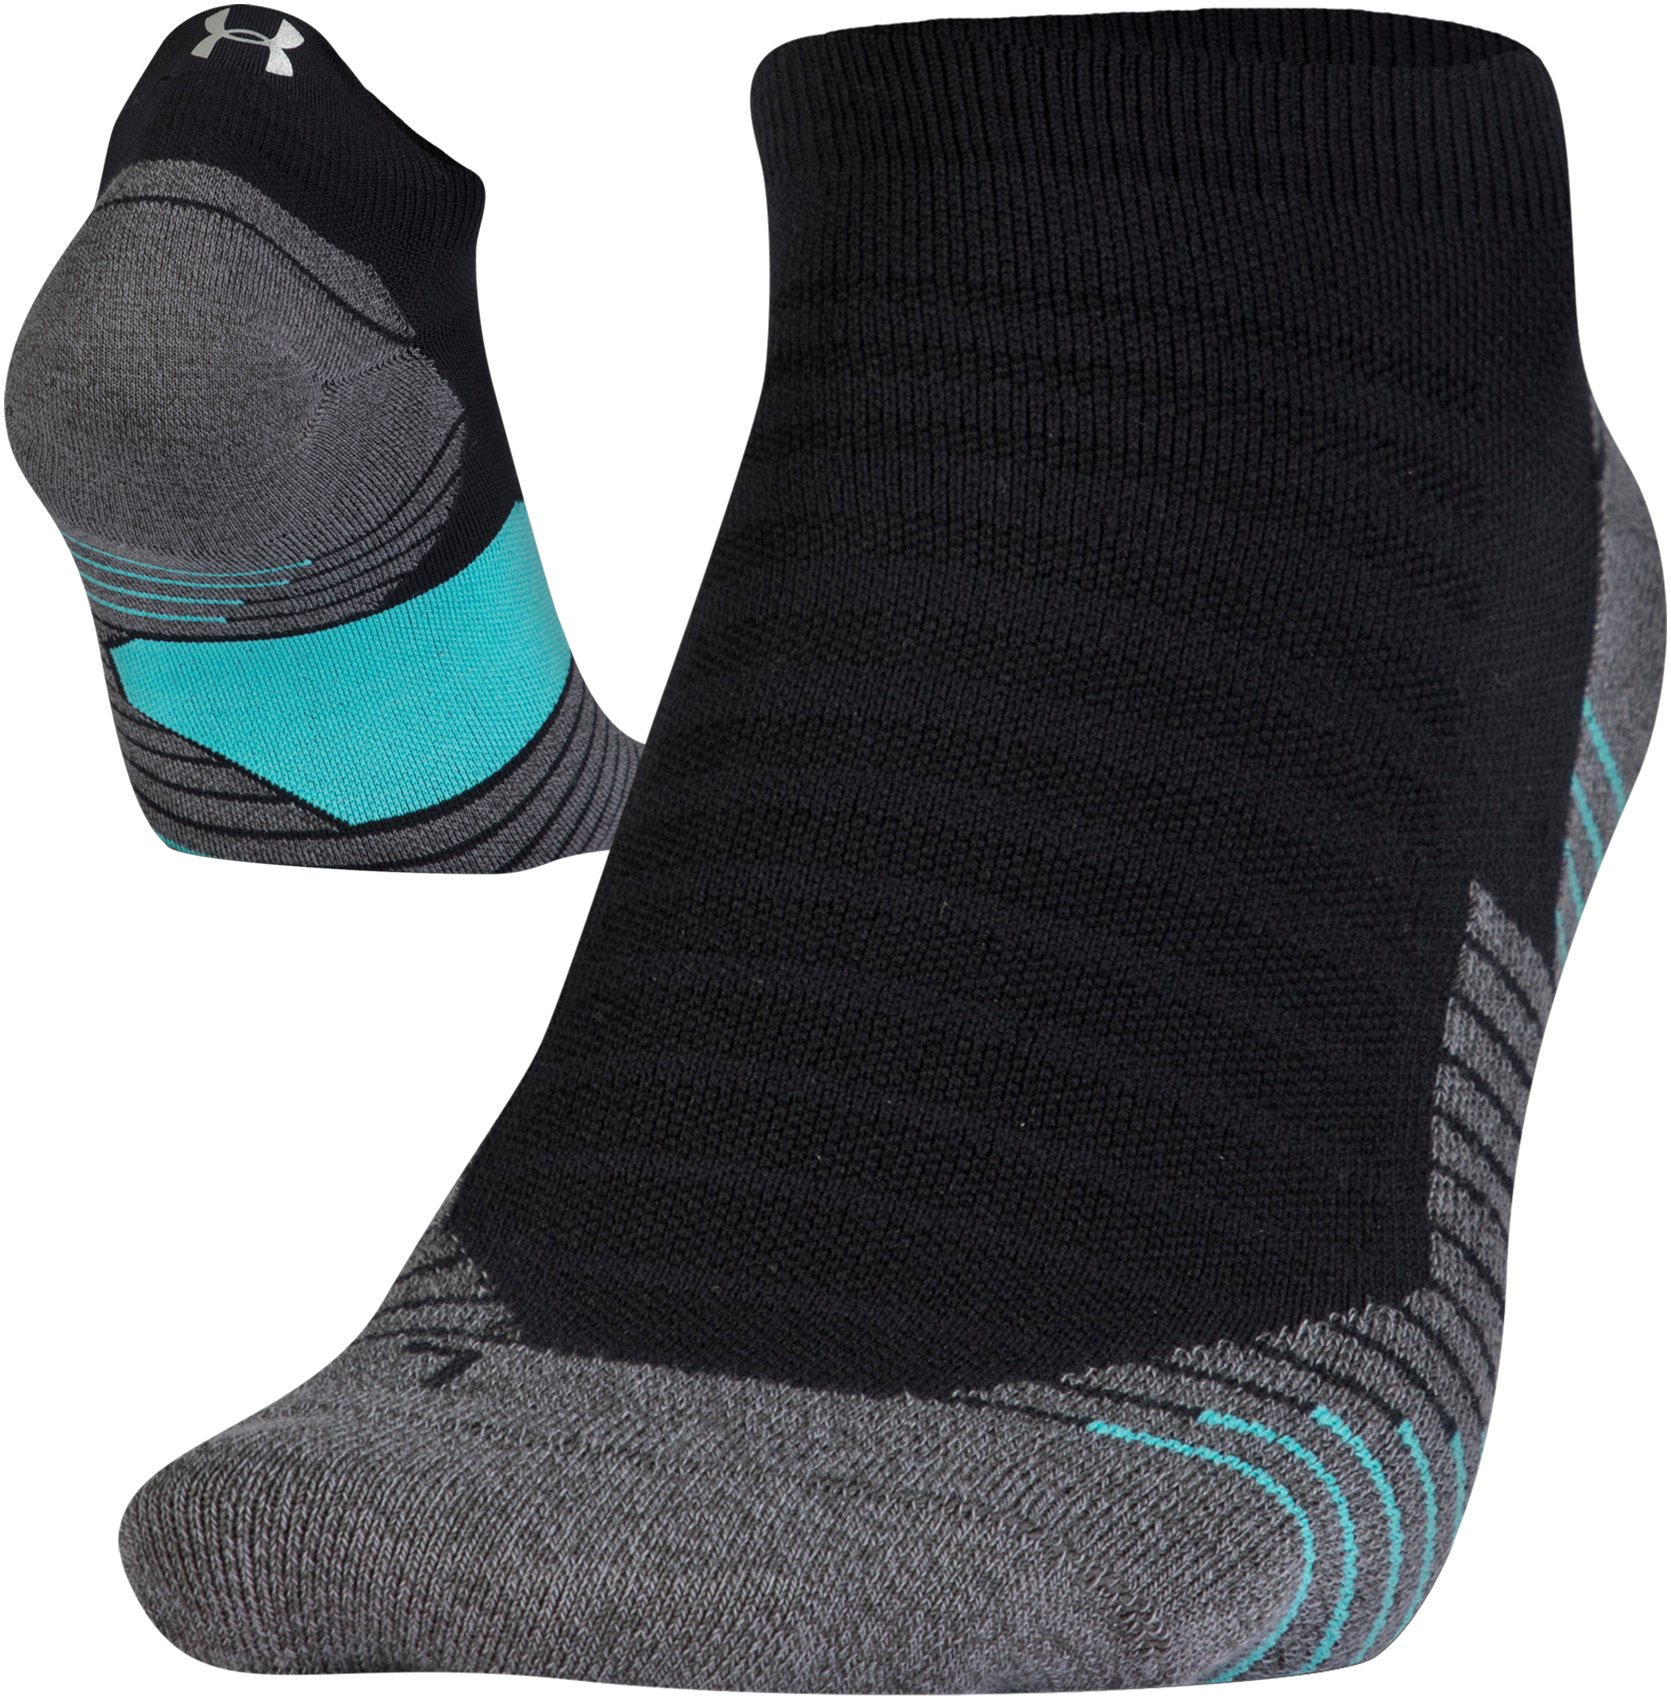 black running socks UA Run No Show Tab Running Socks Comfy socks; lightweight without being super thin....Good product...No annoying patterns leaving imprints.